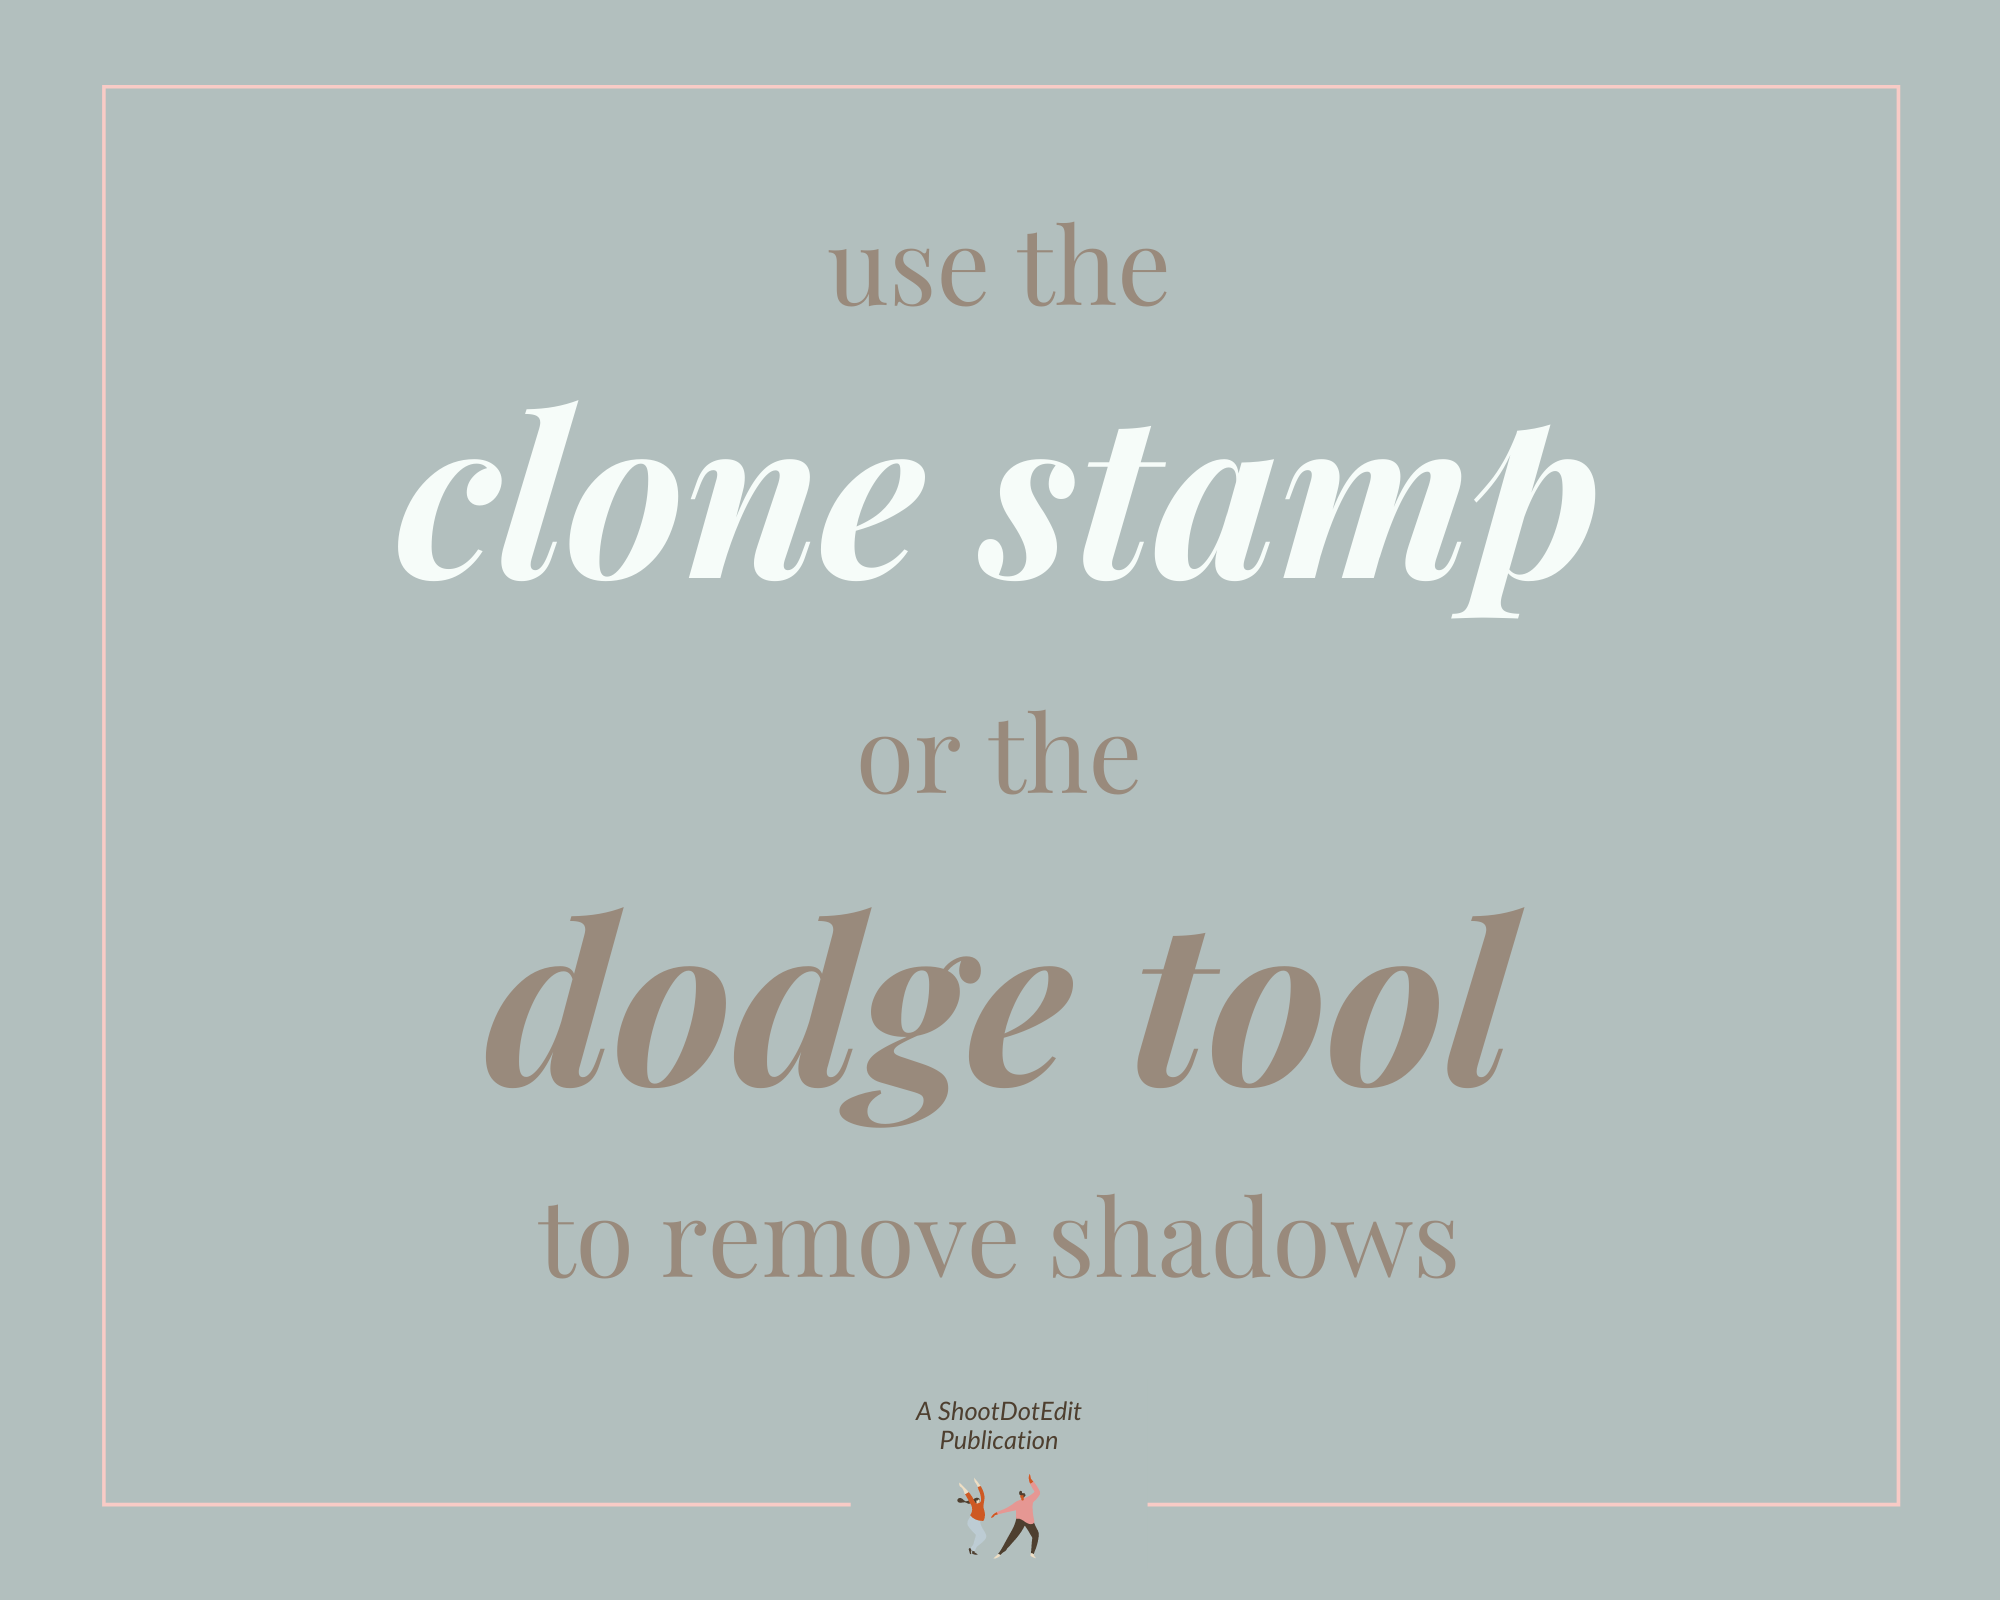 Infographic stating use the close stamp or the dodge tool to remove shadows